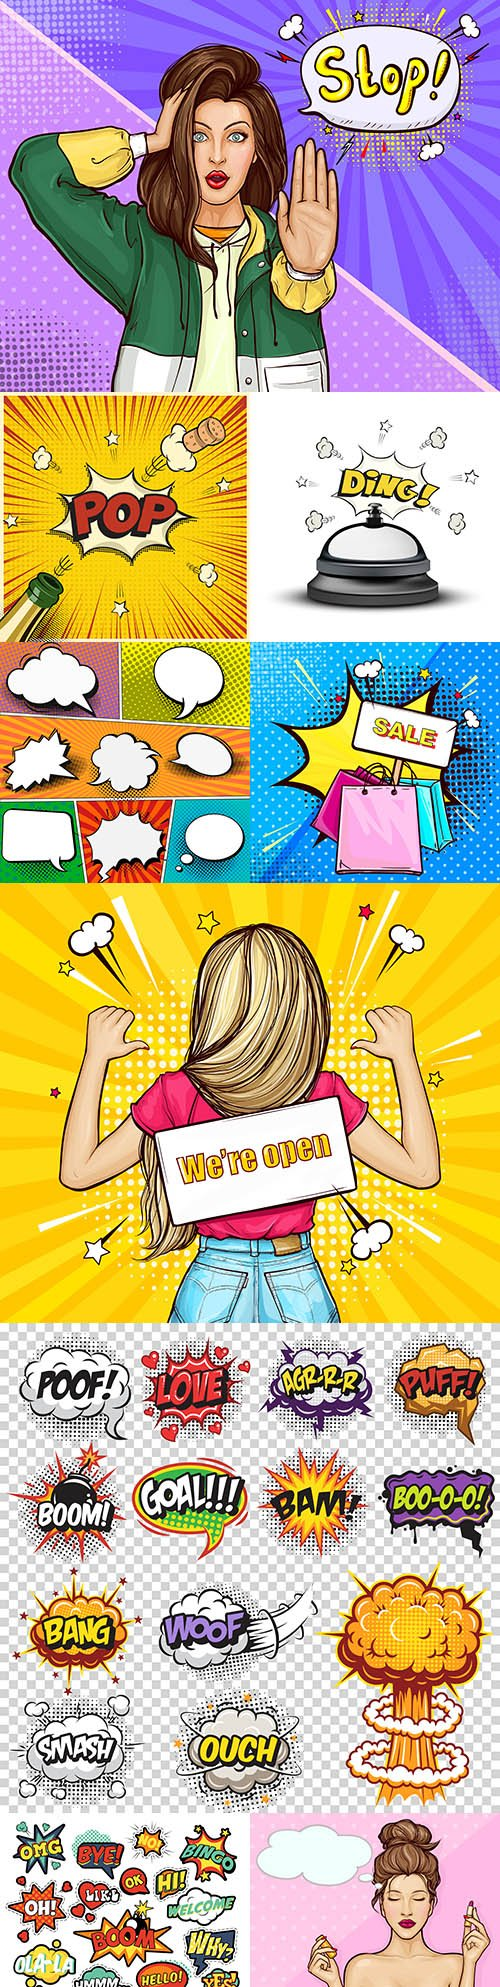 Pop art girl and speech comic book set design